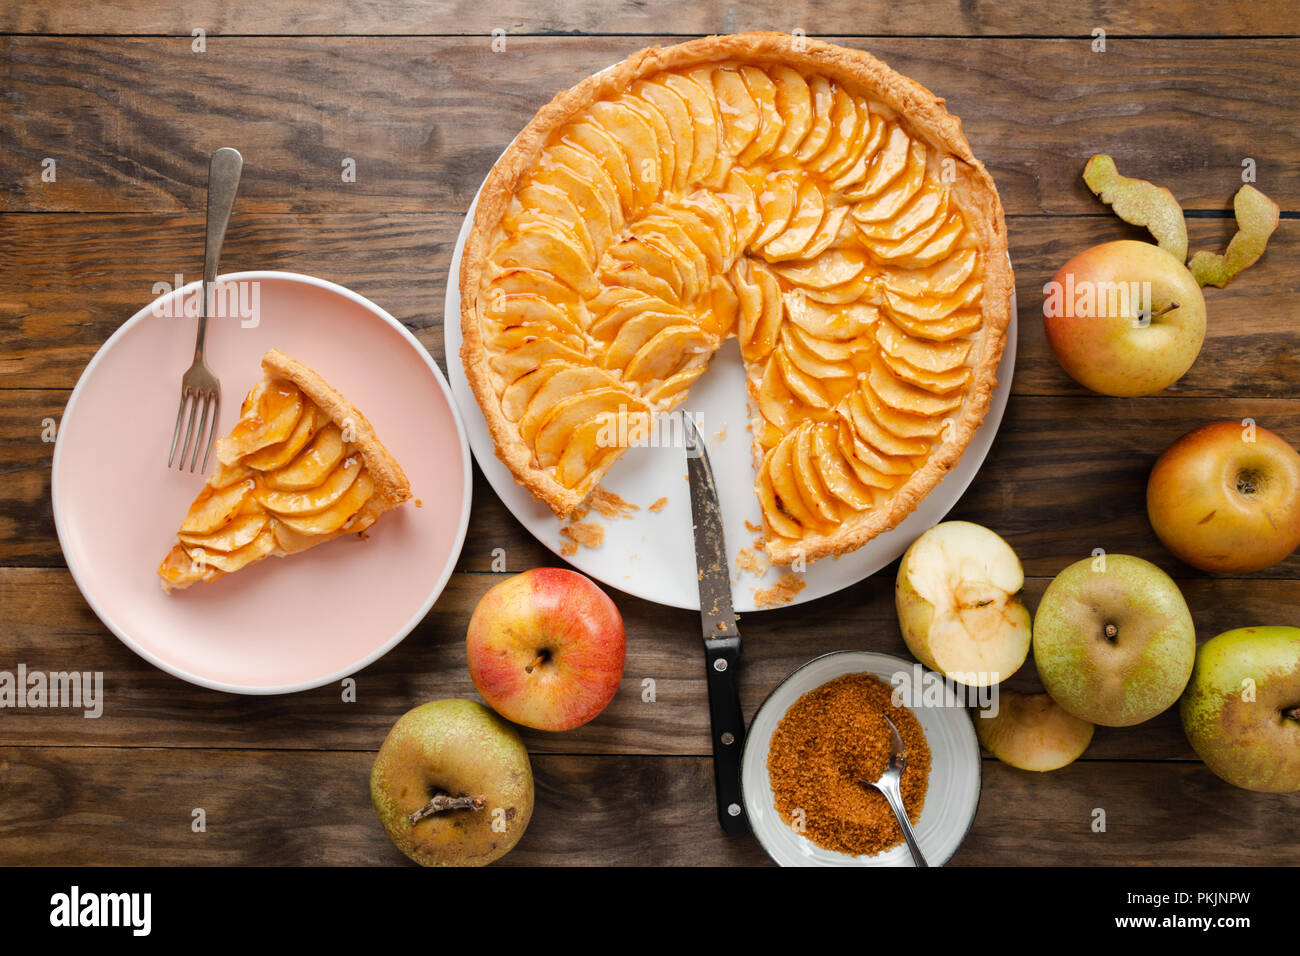 Traditional apple pie tart with custard filling and jam cover on a rustic wooden table. Top view - Stock Image